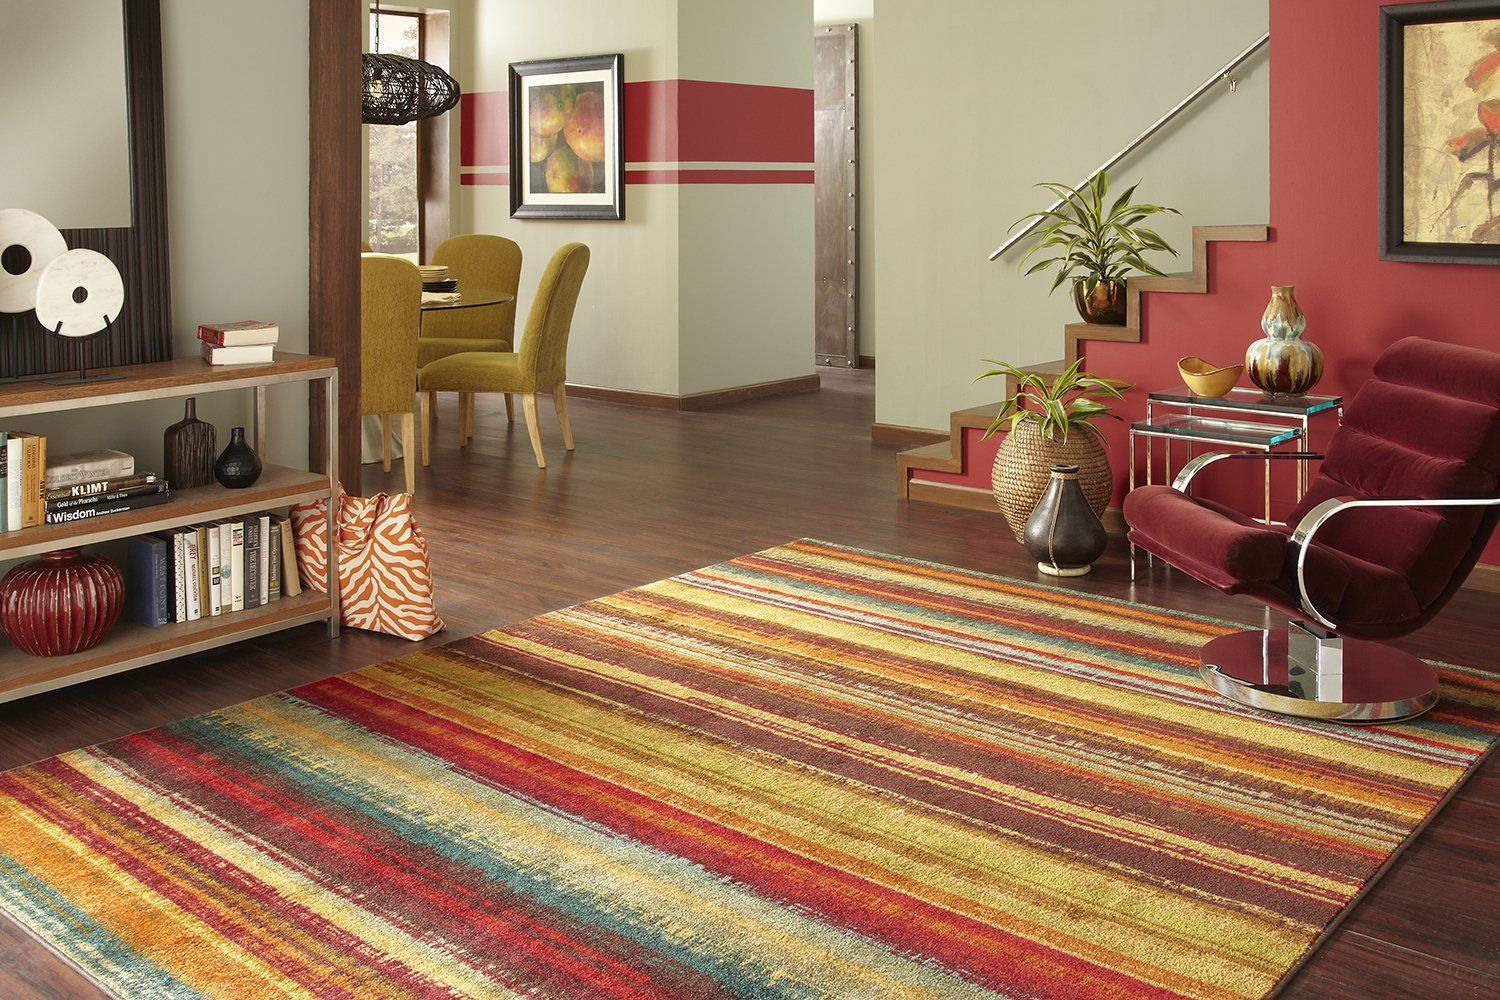 Mohawk home new wave boho stripe printed area rug x multicolor